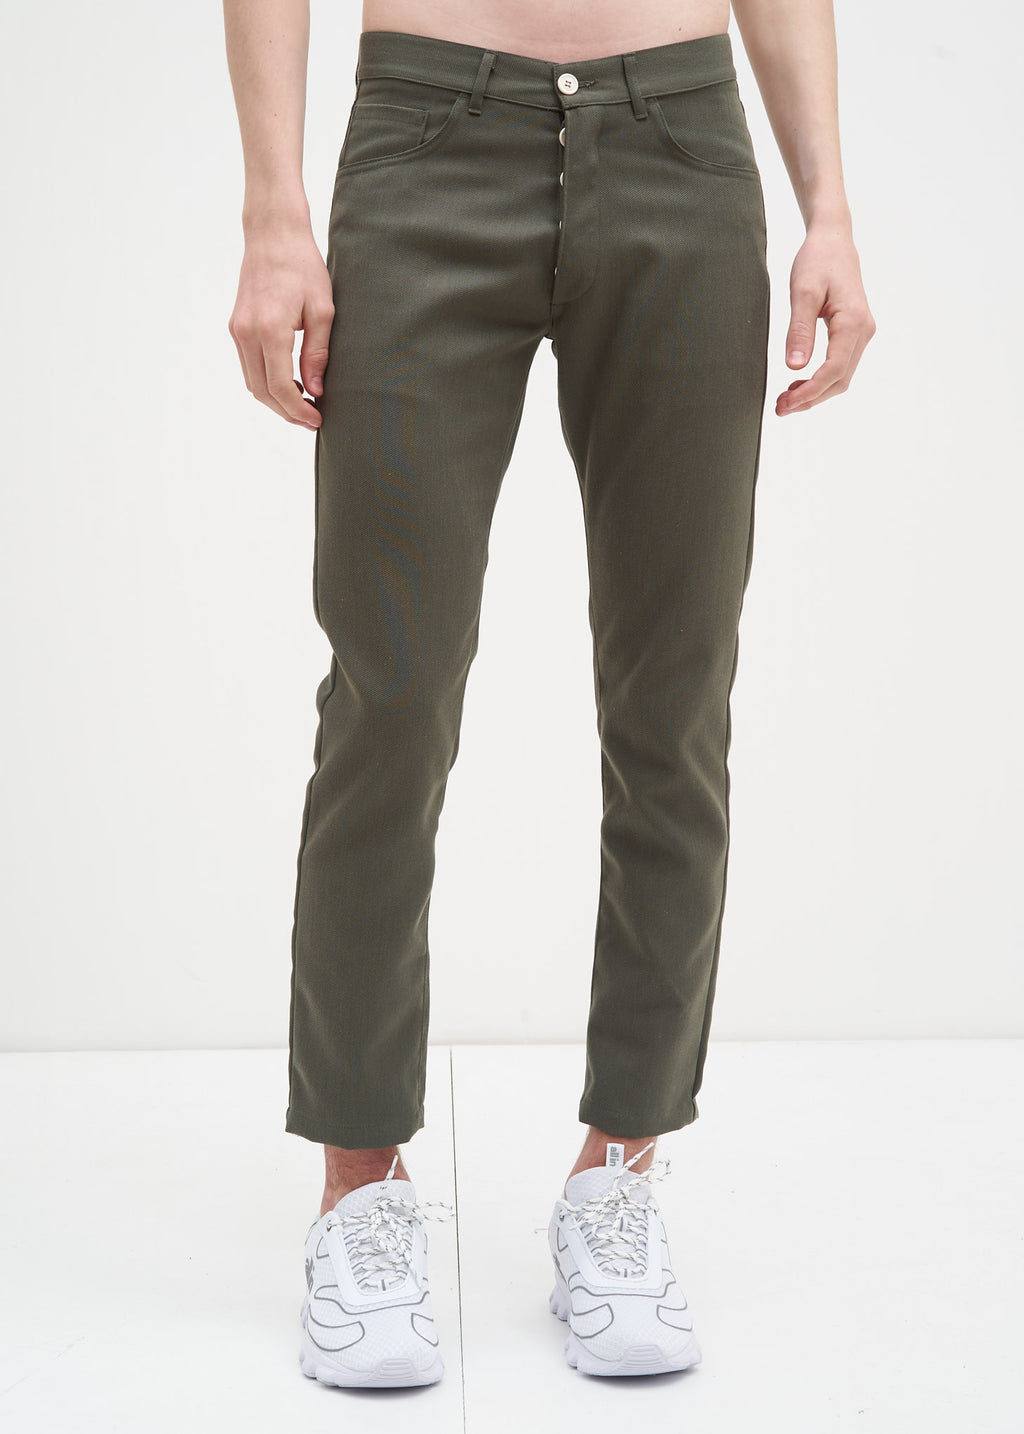 Military Green Skinny Pants